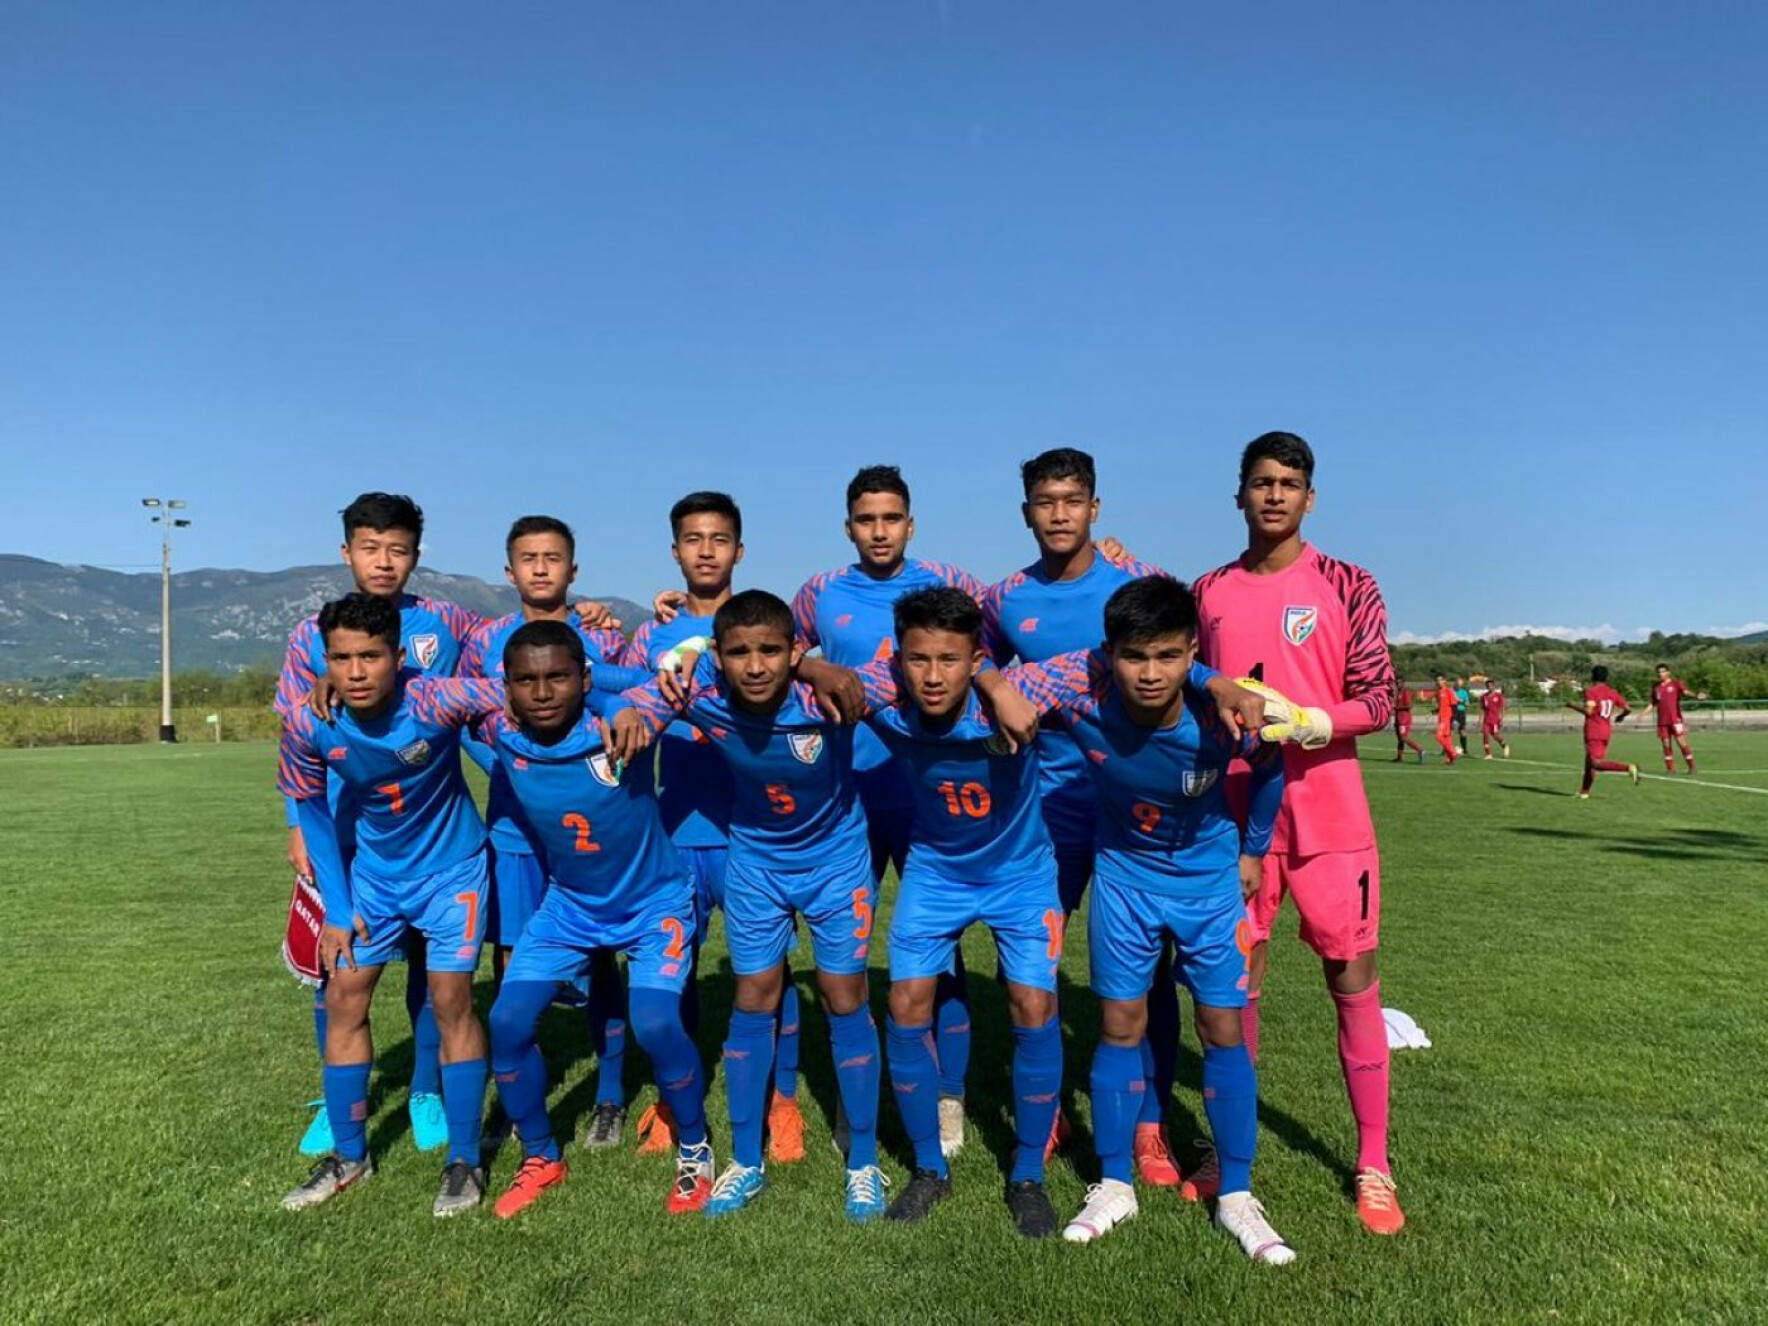 MU-15 Tournament 2019: India hold Slovenia for a thrilling draw.